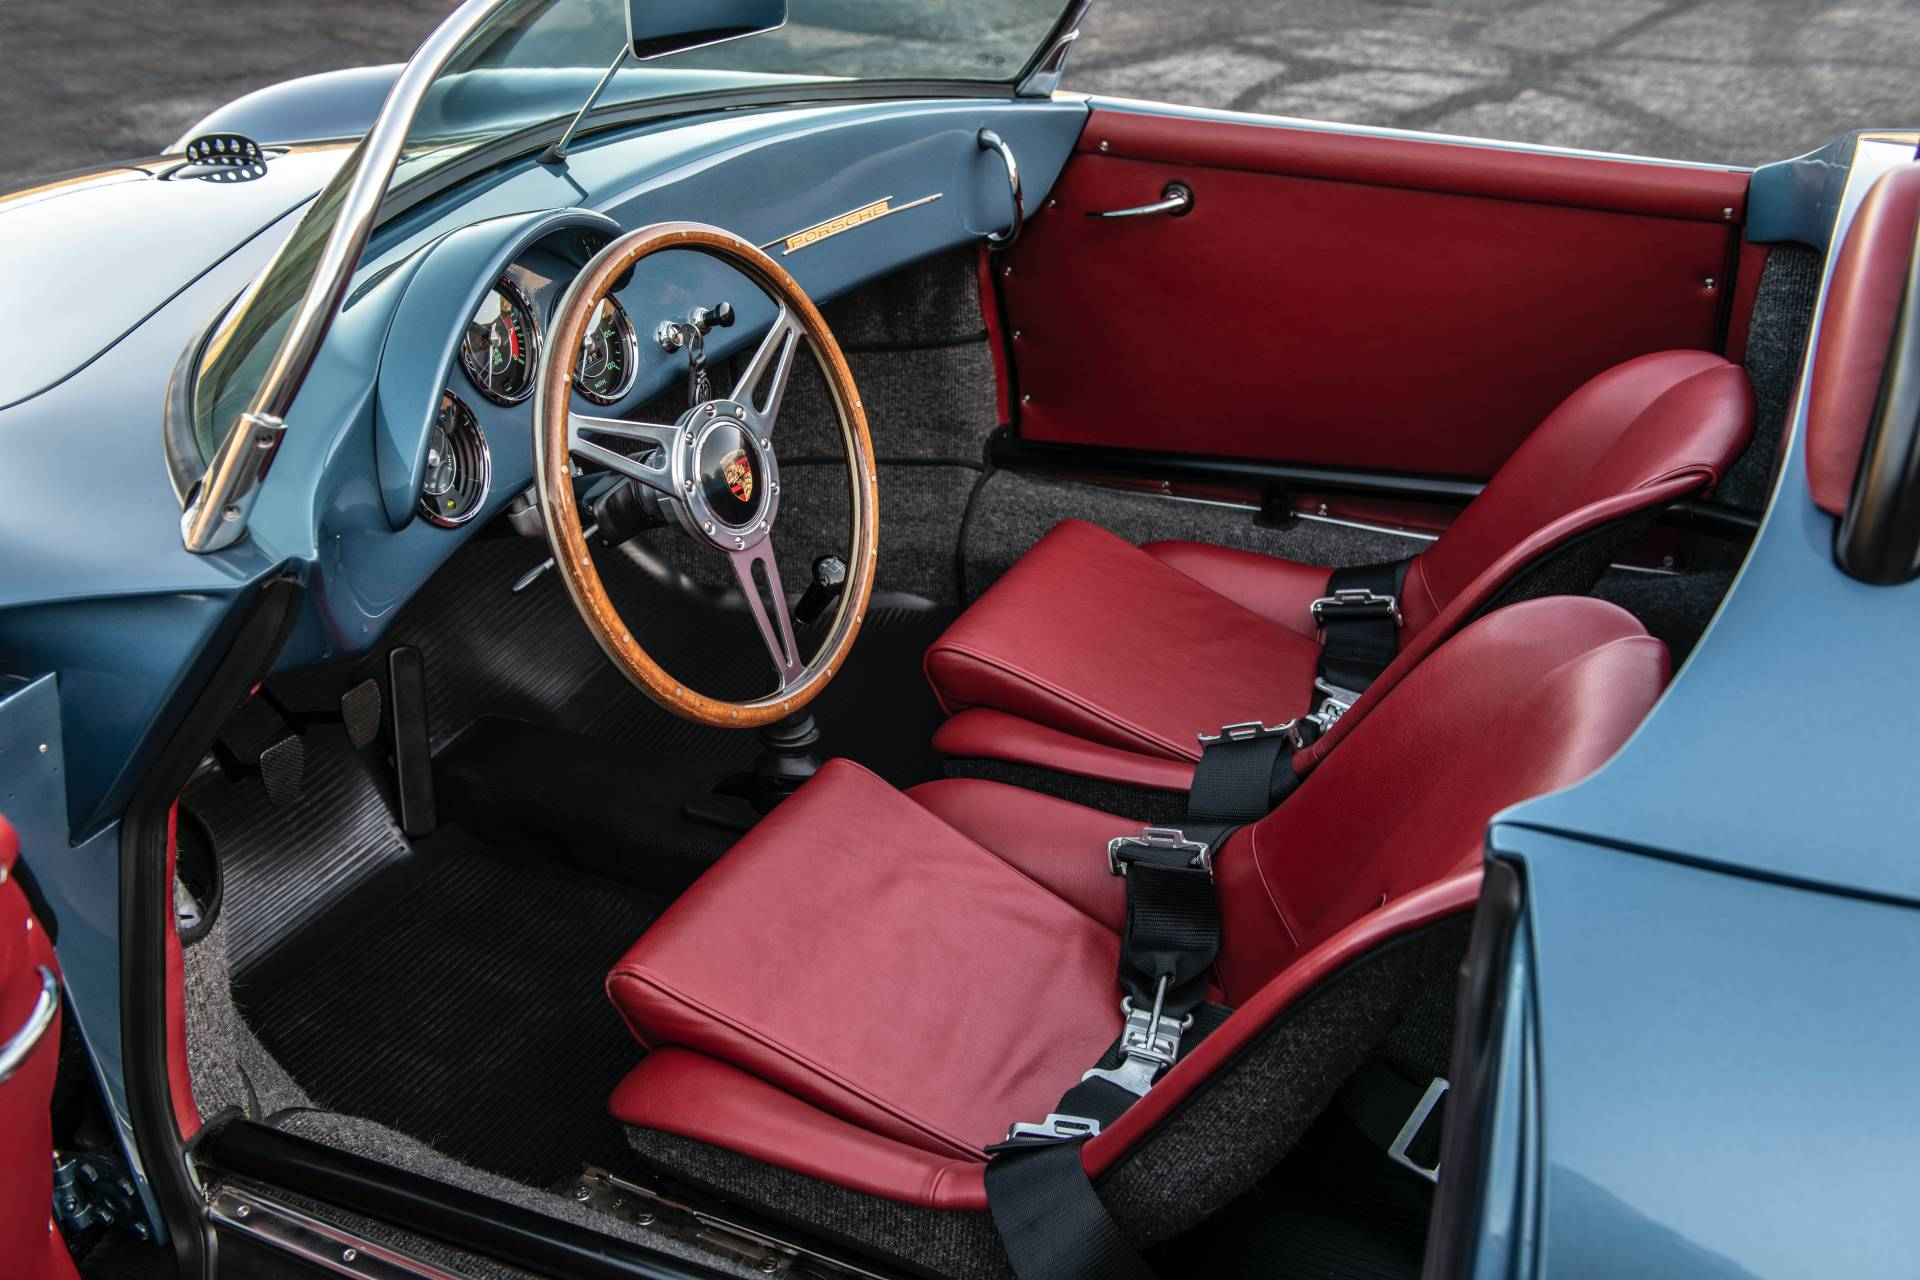 Porsche-356-Speedster-1959-Aquamarine-Transitional-By-Emory-Motorsport-30